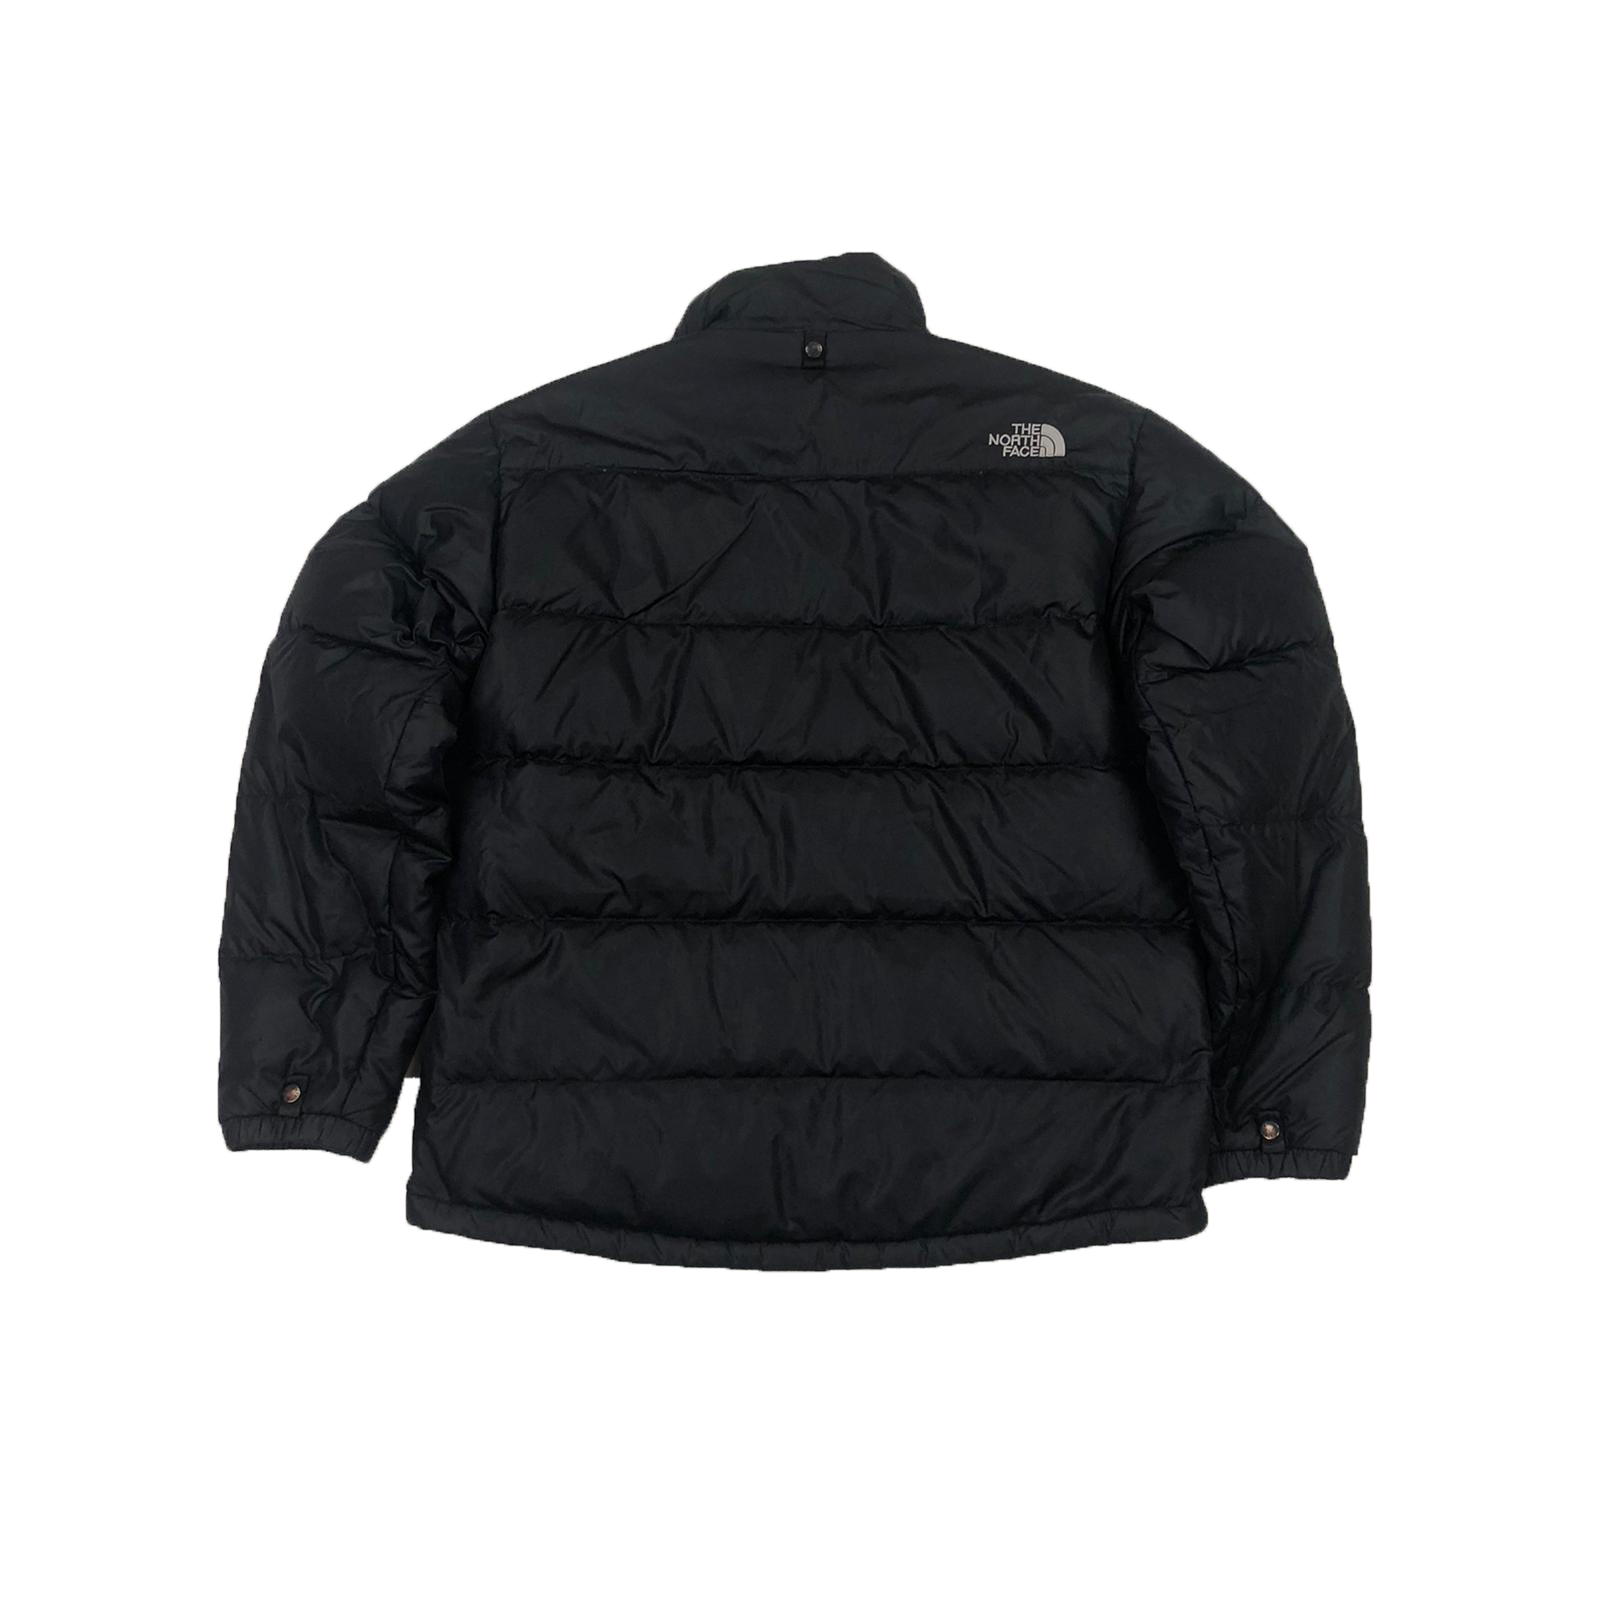 The North Face 600 puffer